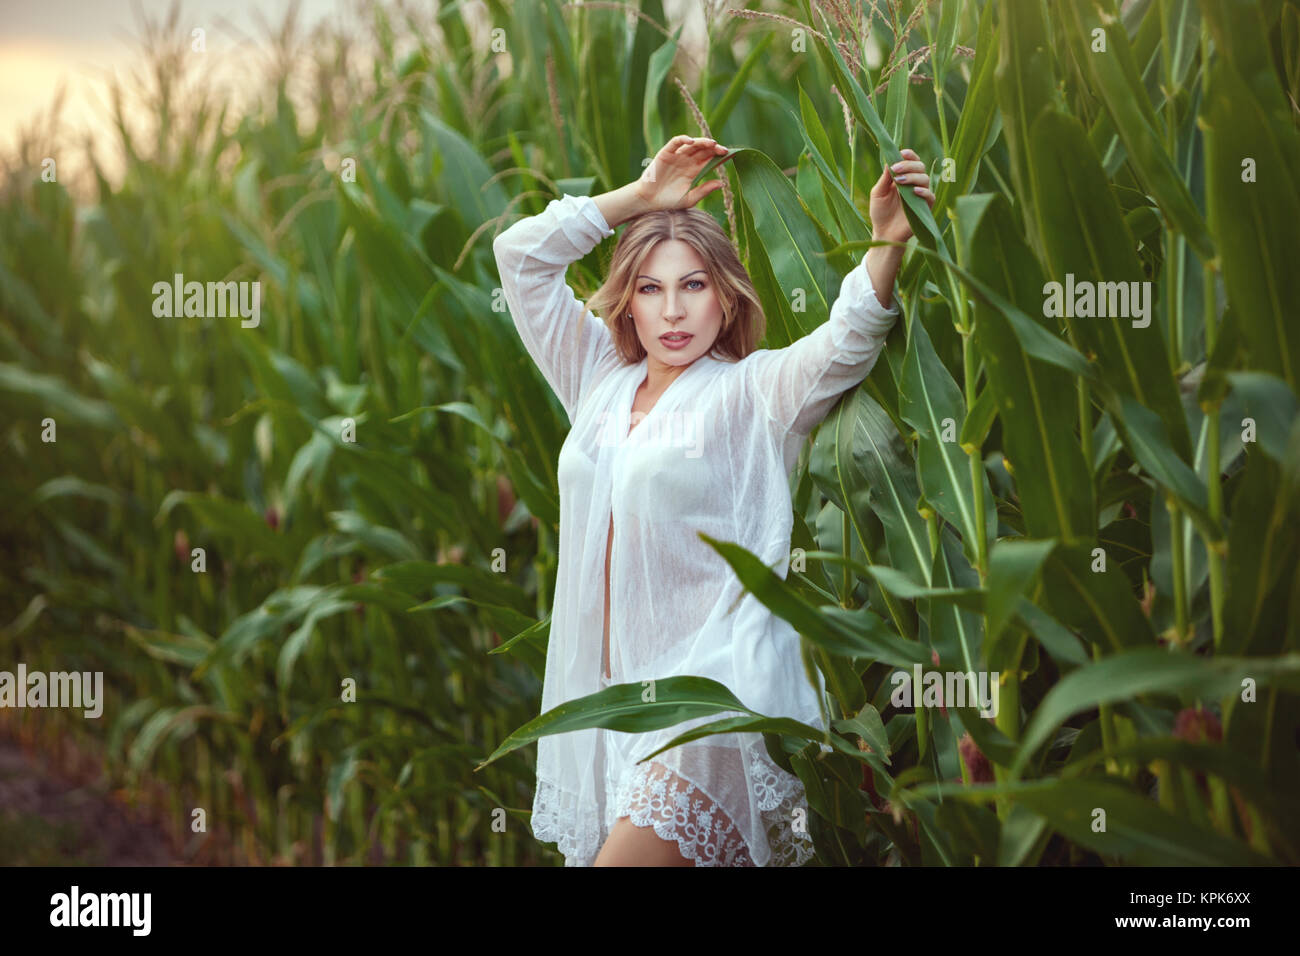 Woman among the tall grass in nature. Stock Photo